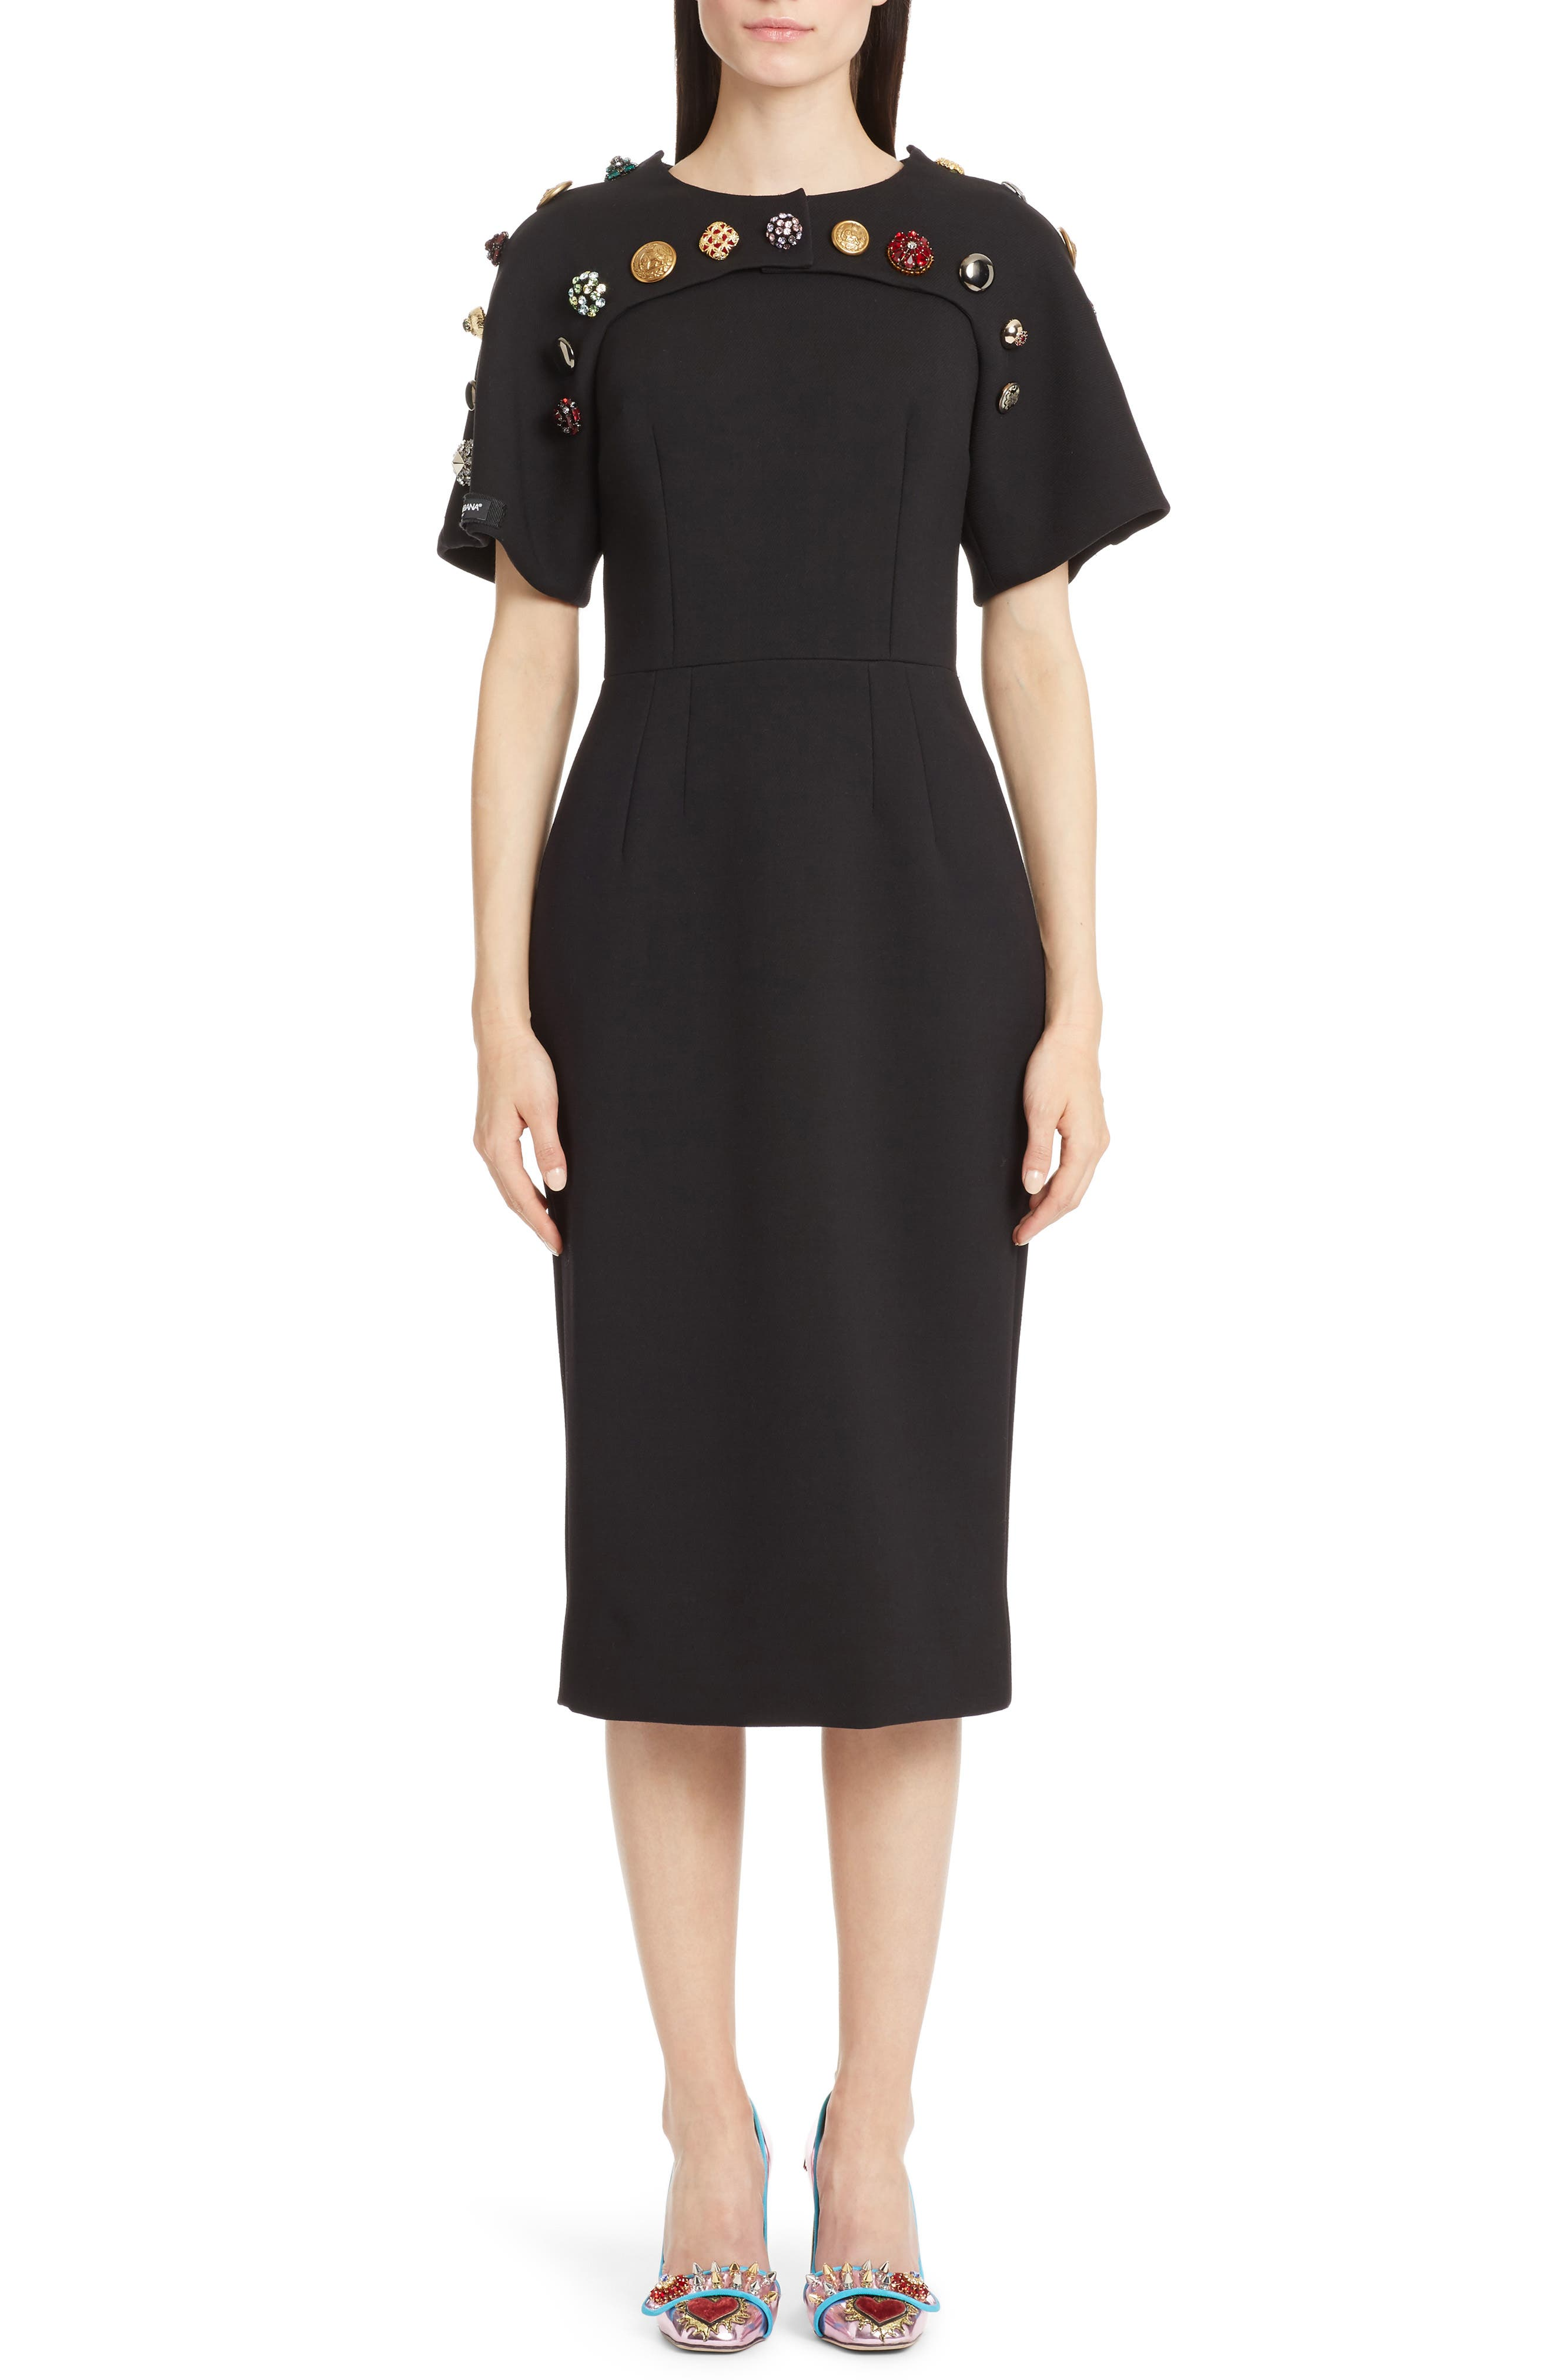 Main Image - Dolce&Gabbana Button Trim Stretch Wool Sheath Dress